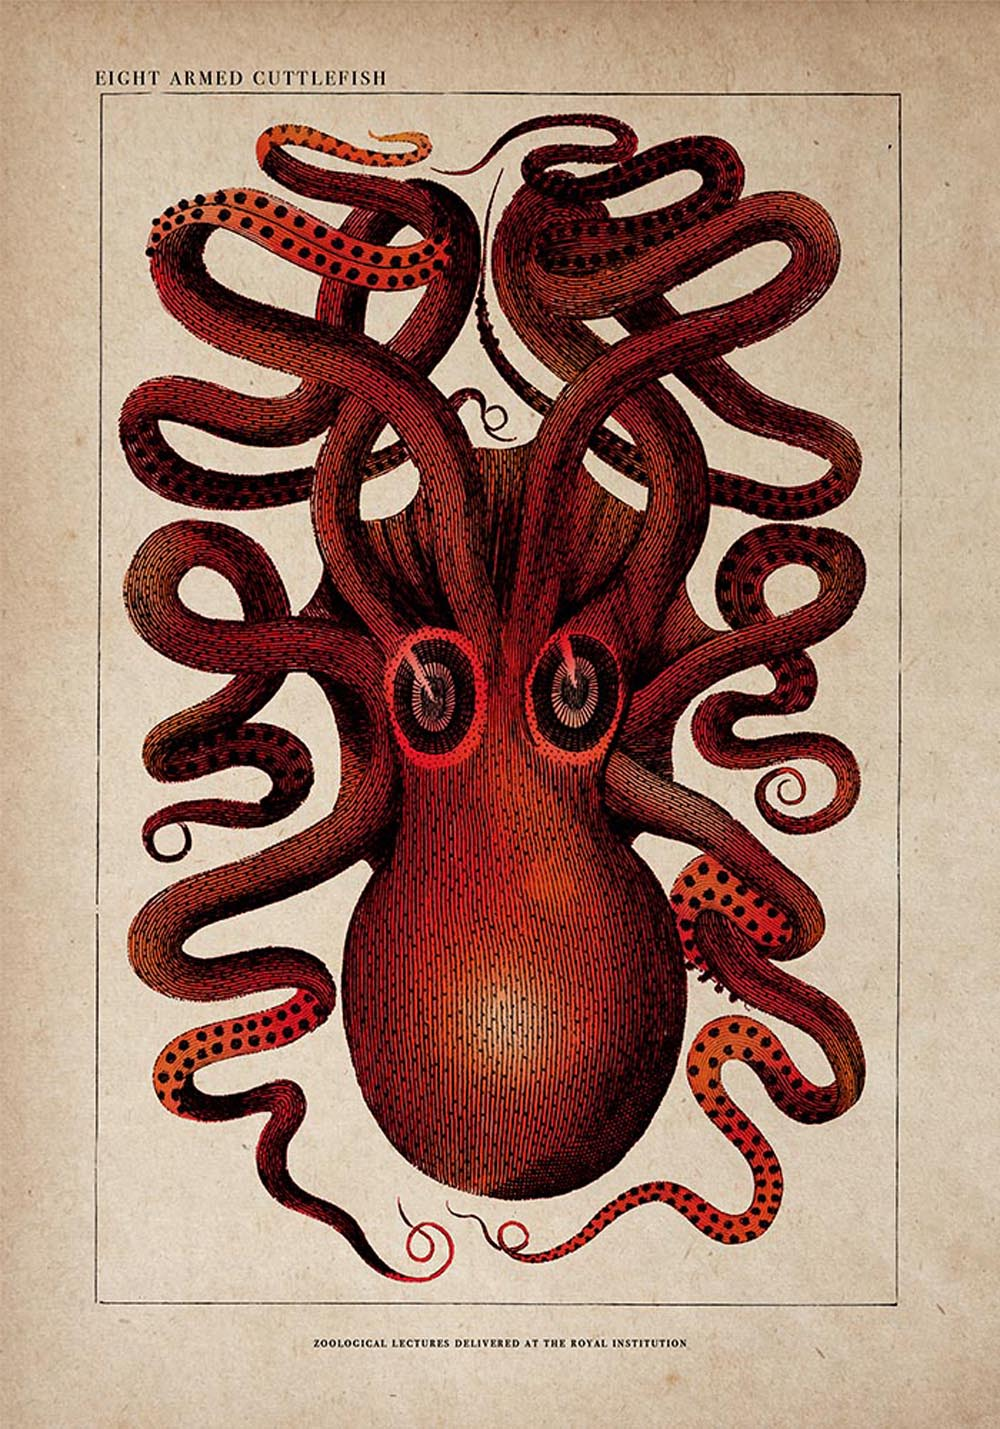 Antique Red Octopus  Poster by KURIOSIS